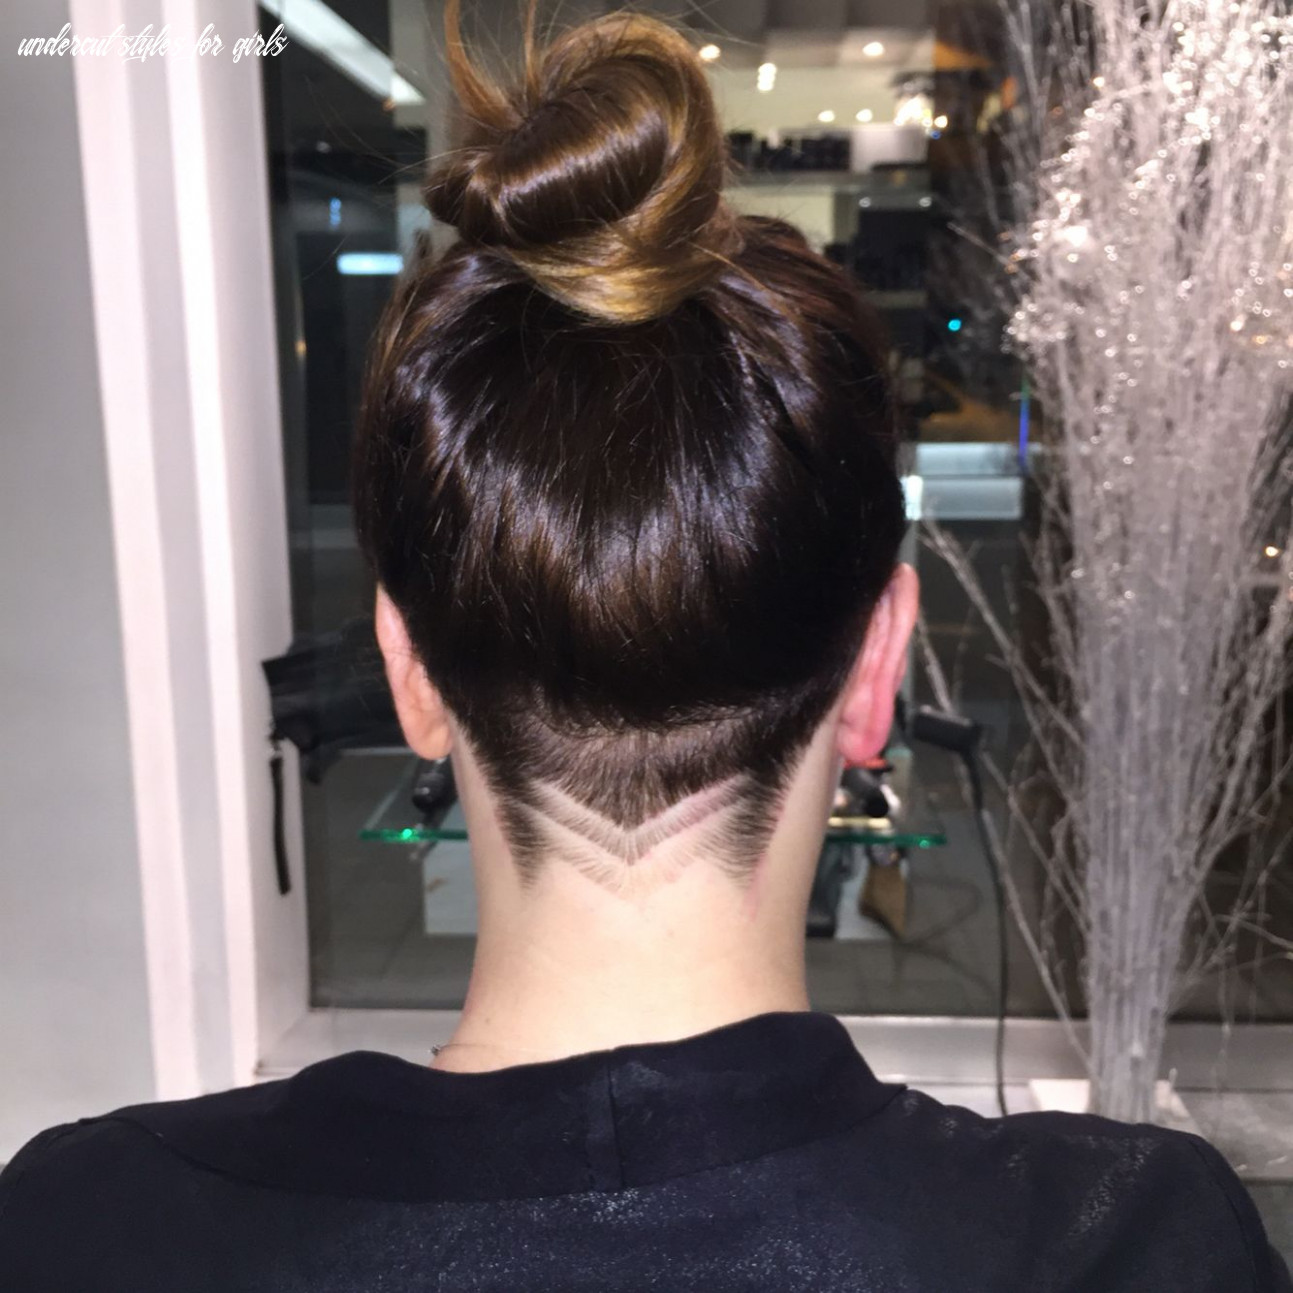 Image result for undercut side view long hair woman | undercut